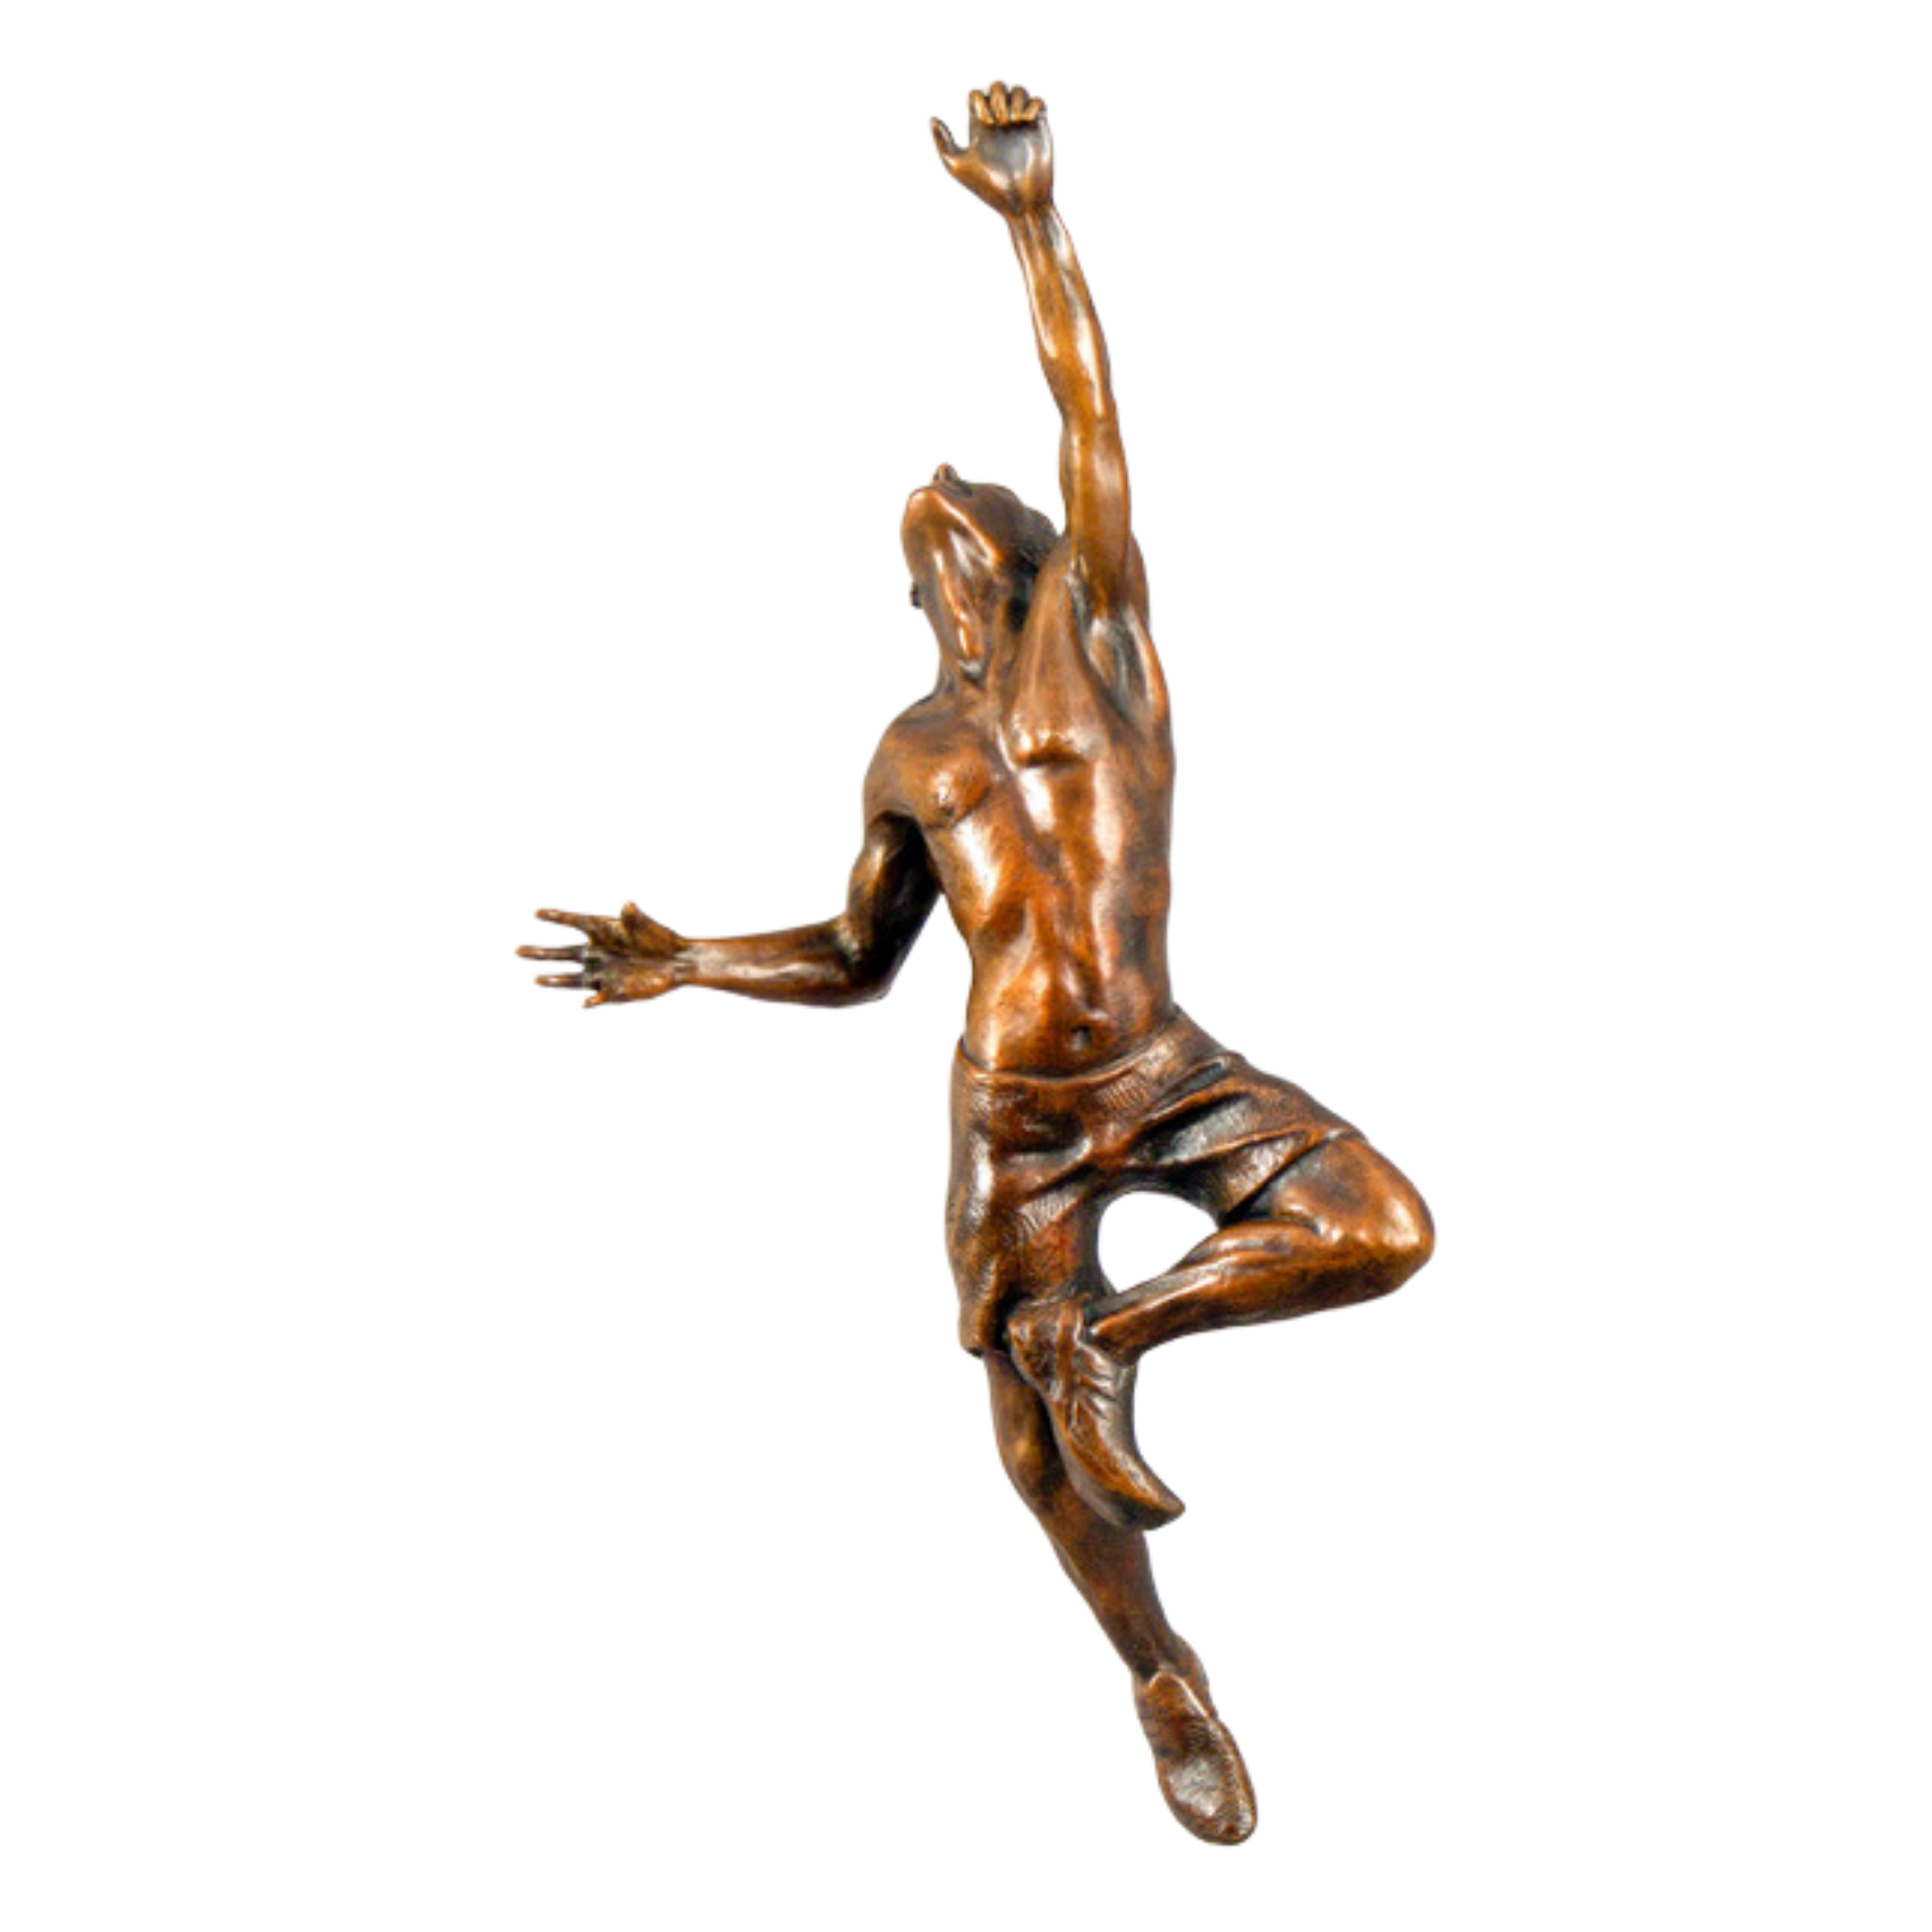 Lance glasser   the ascent transparent background   evo art maui front street lahaina sculpture climber male man hawaii dp7rx1